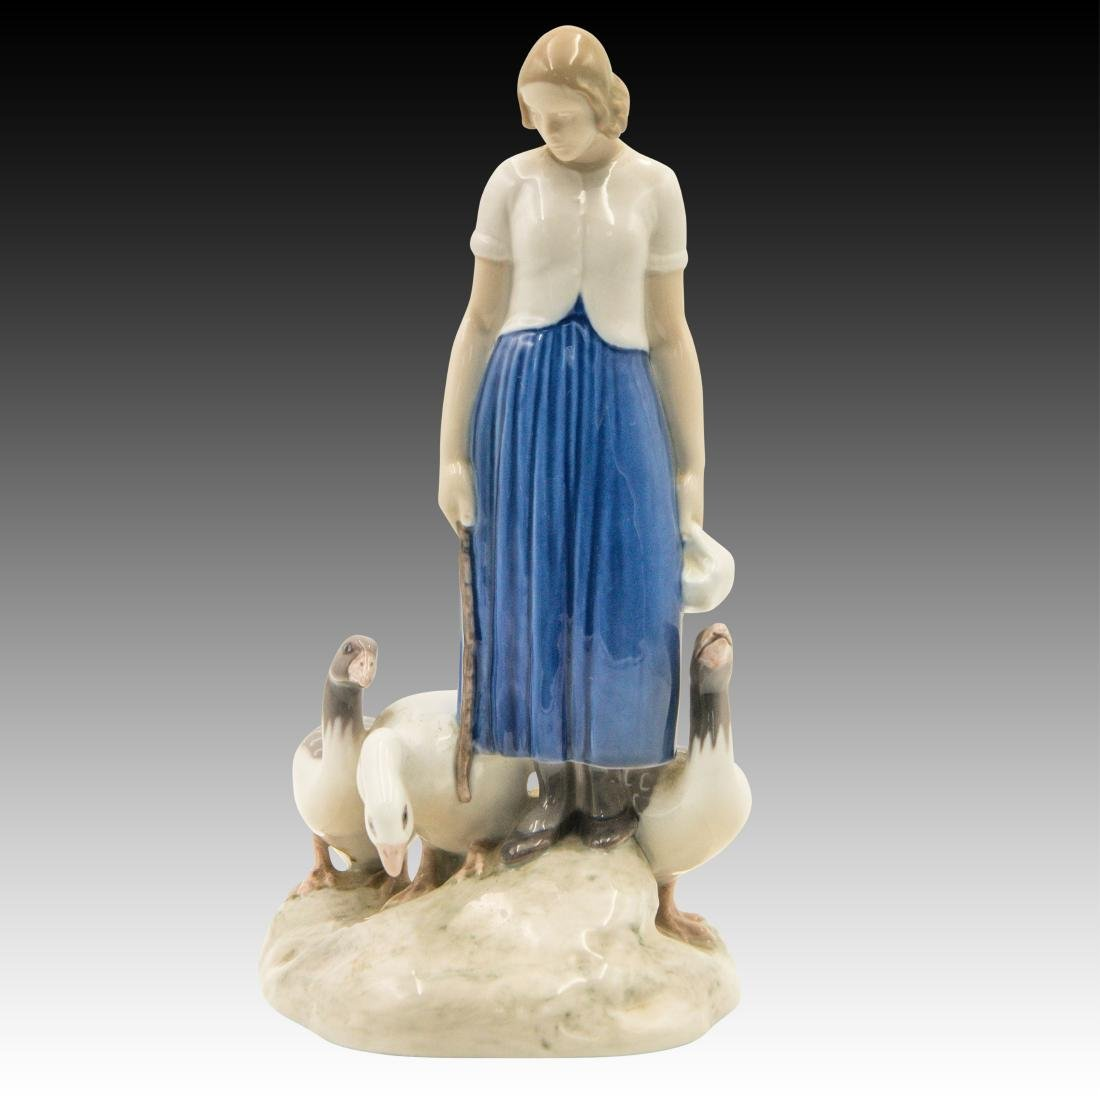 Bing & Grondahl Woman with 3 Geese # 2254